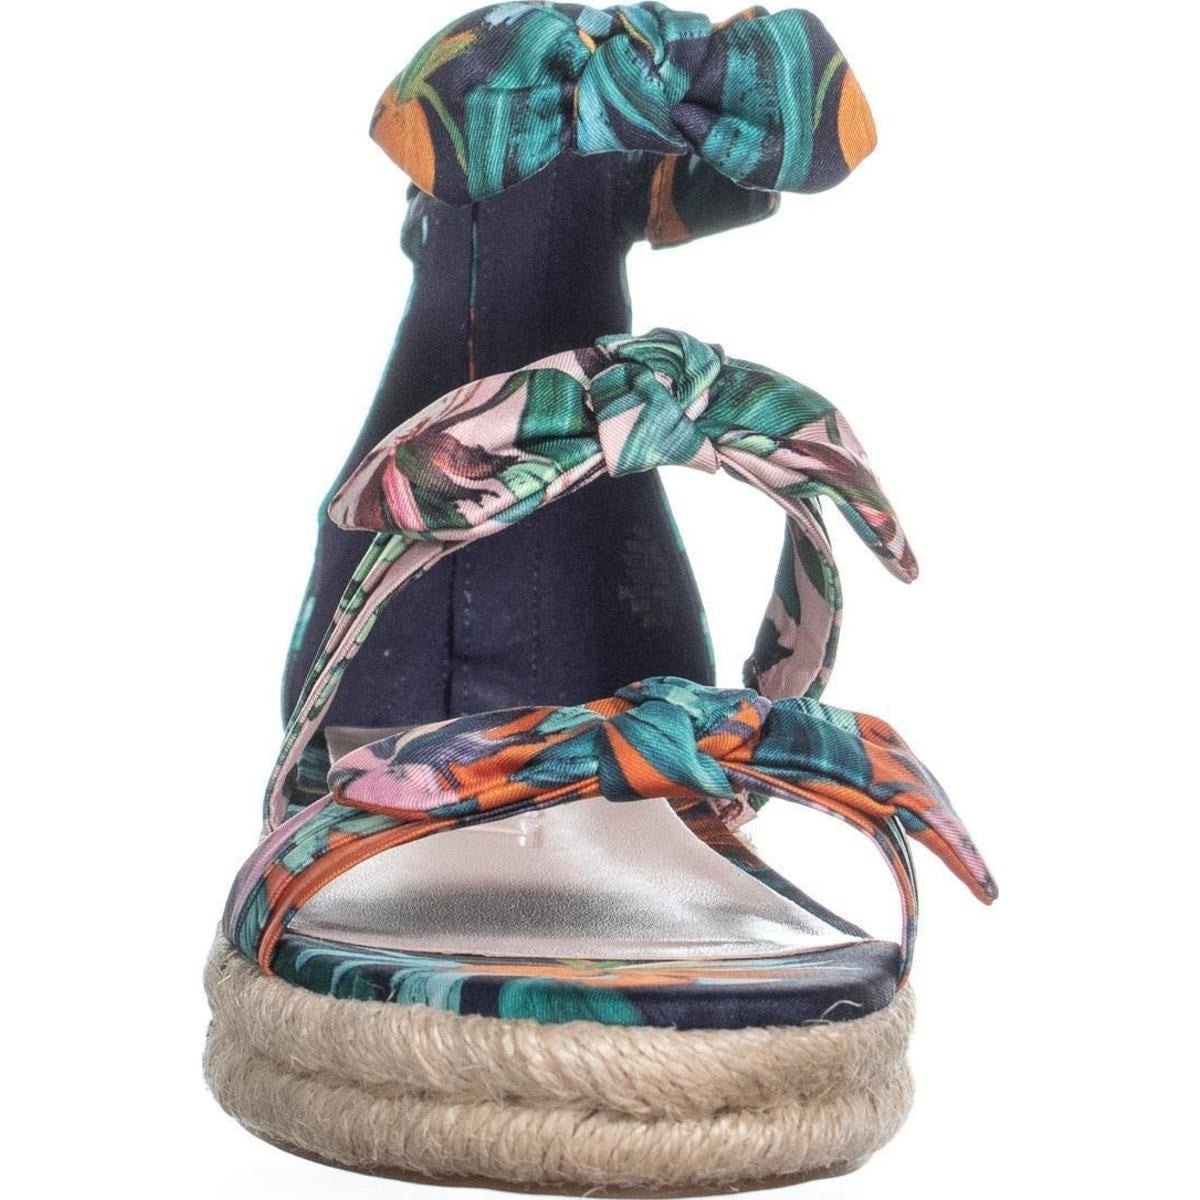 8634c2e0909 Nine West Allegro Bow Espadrilles Sandals, Navy Multi